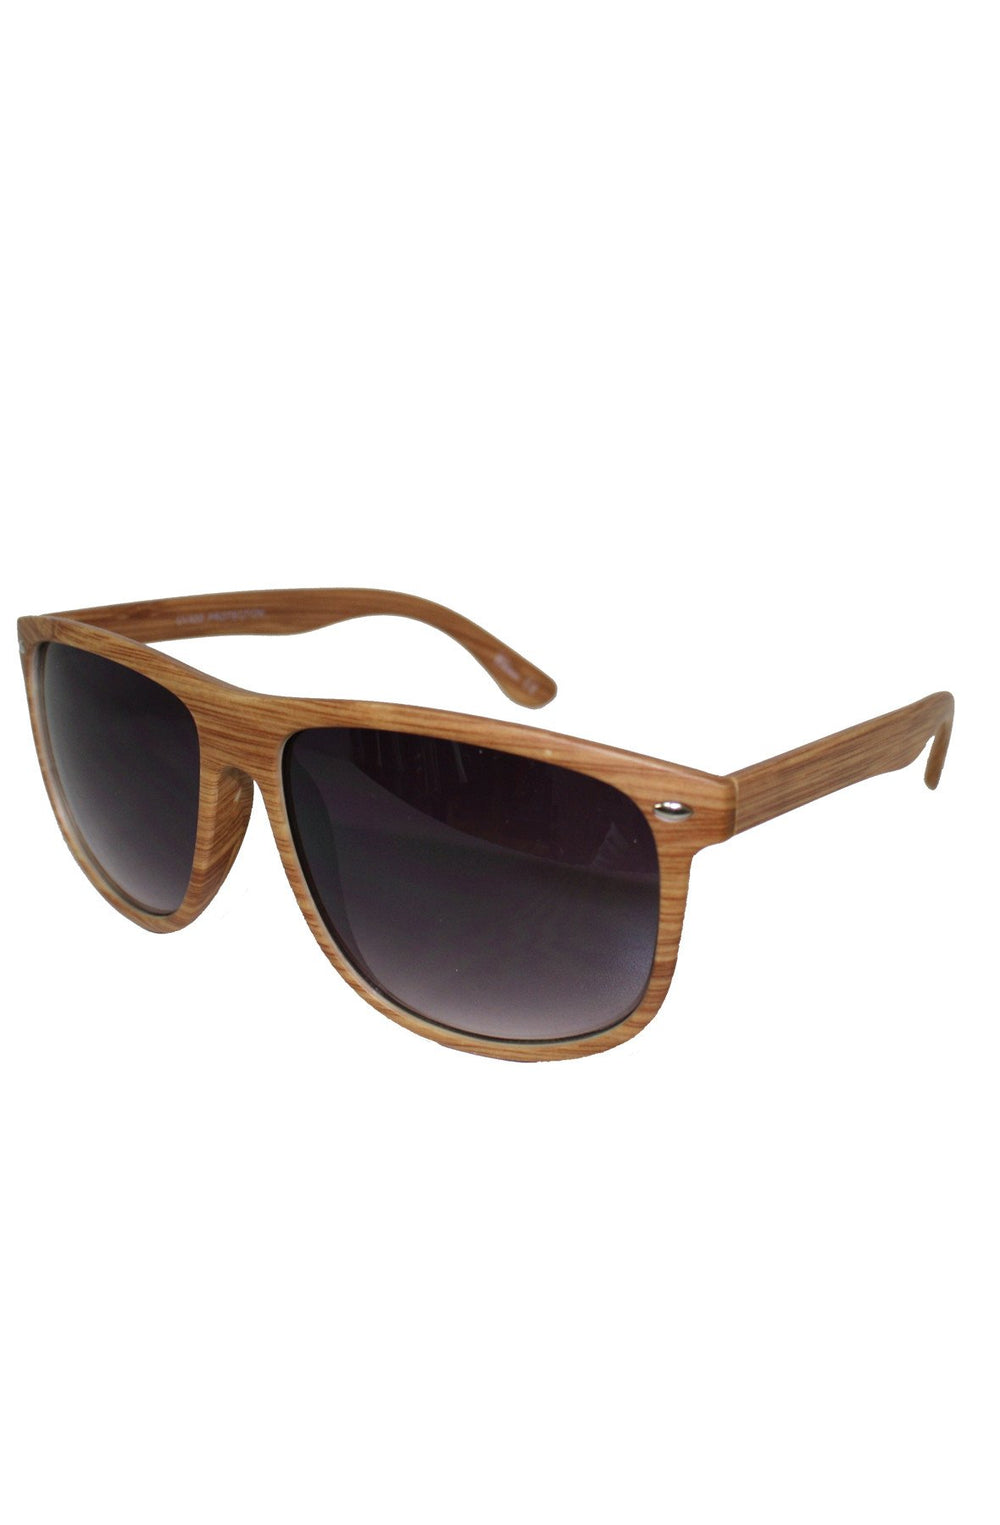 Standard Wood SUNGLASSES FADED ROYALTY